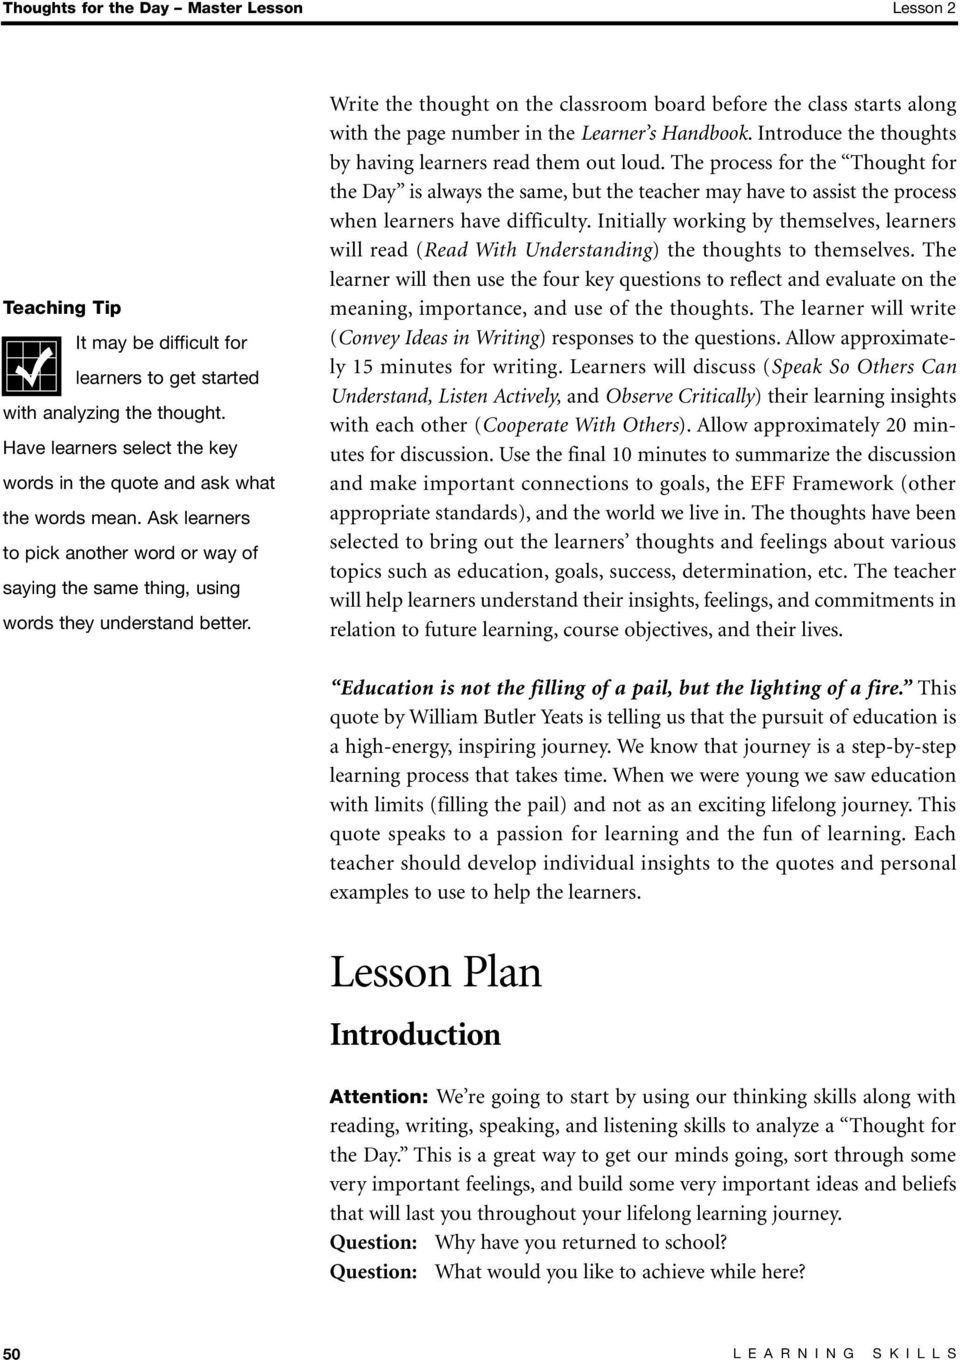 Thought for the Day Master Lesson - PDF